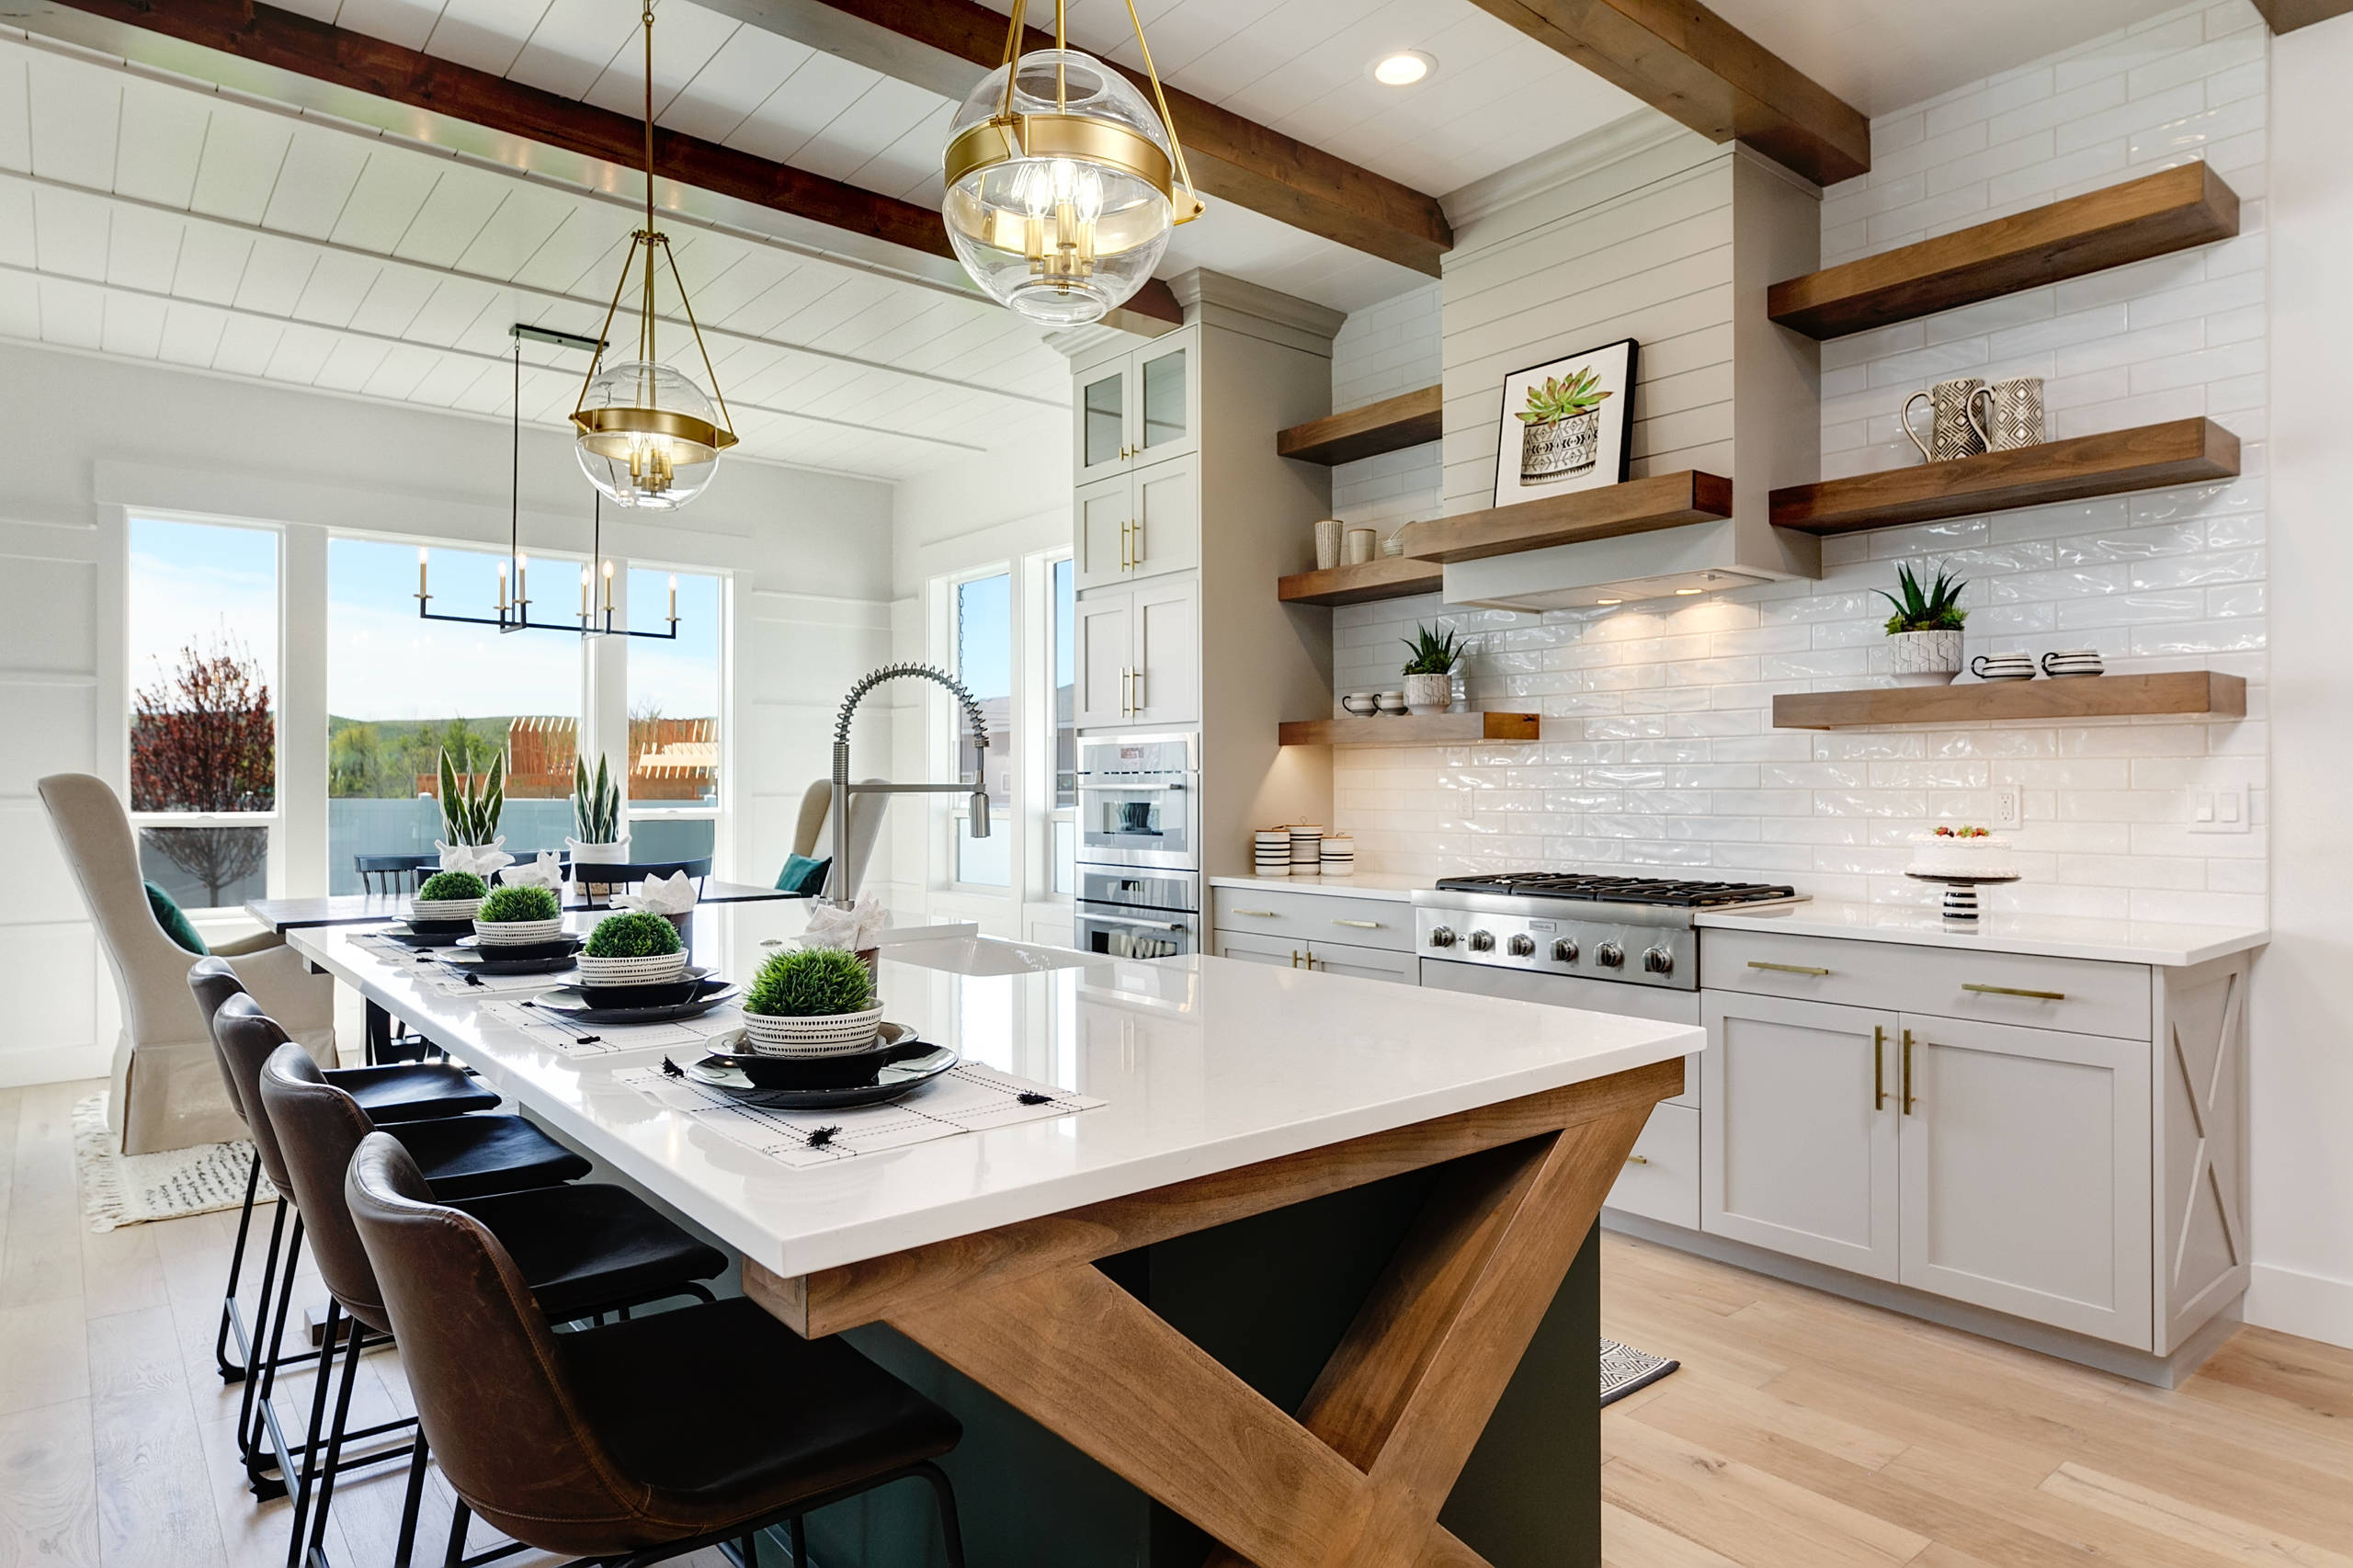 75 Beautiful L Shaped Open Concept Kitchen Pictures Ideas November 2020 Houzz